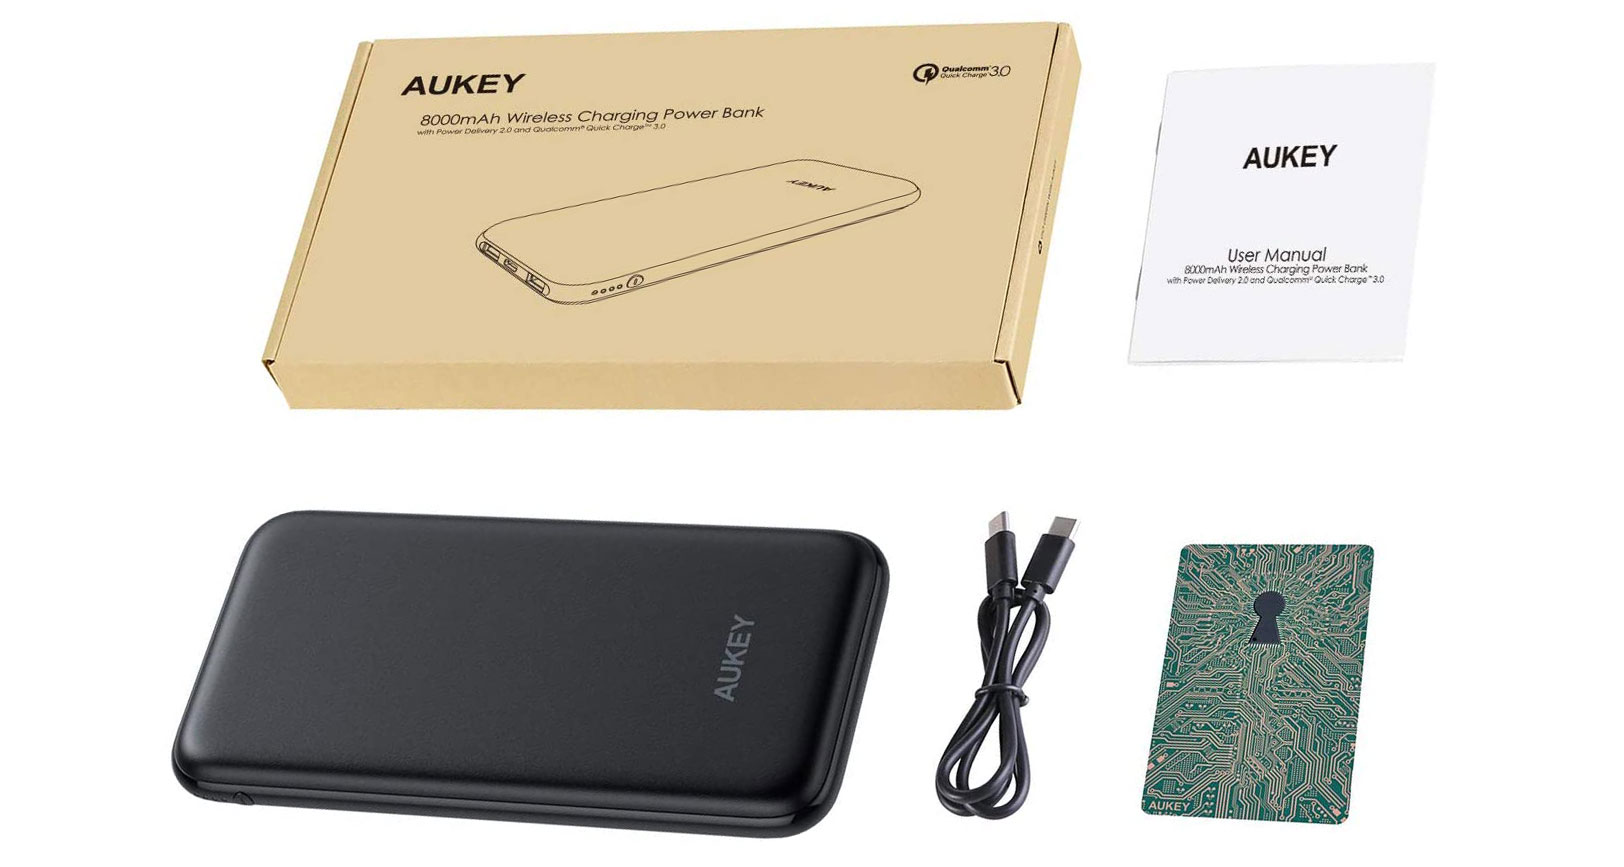 PB-Y25, il powerbank con carica wireless